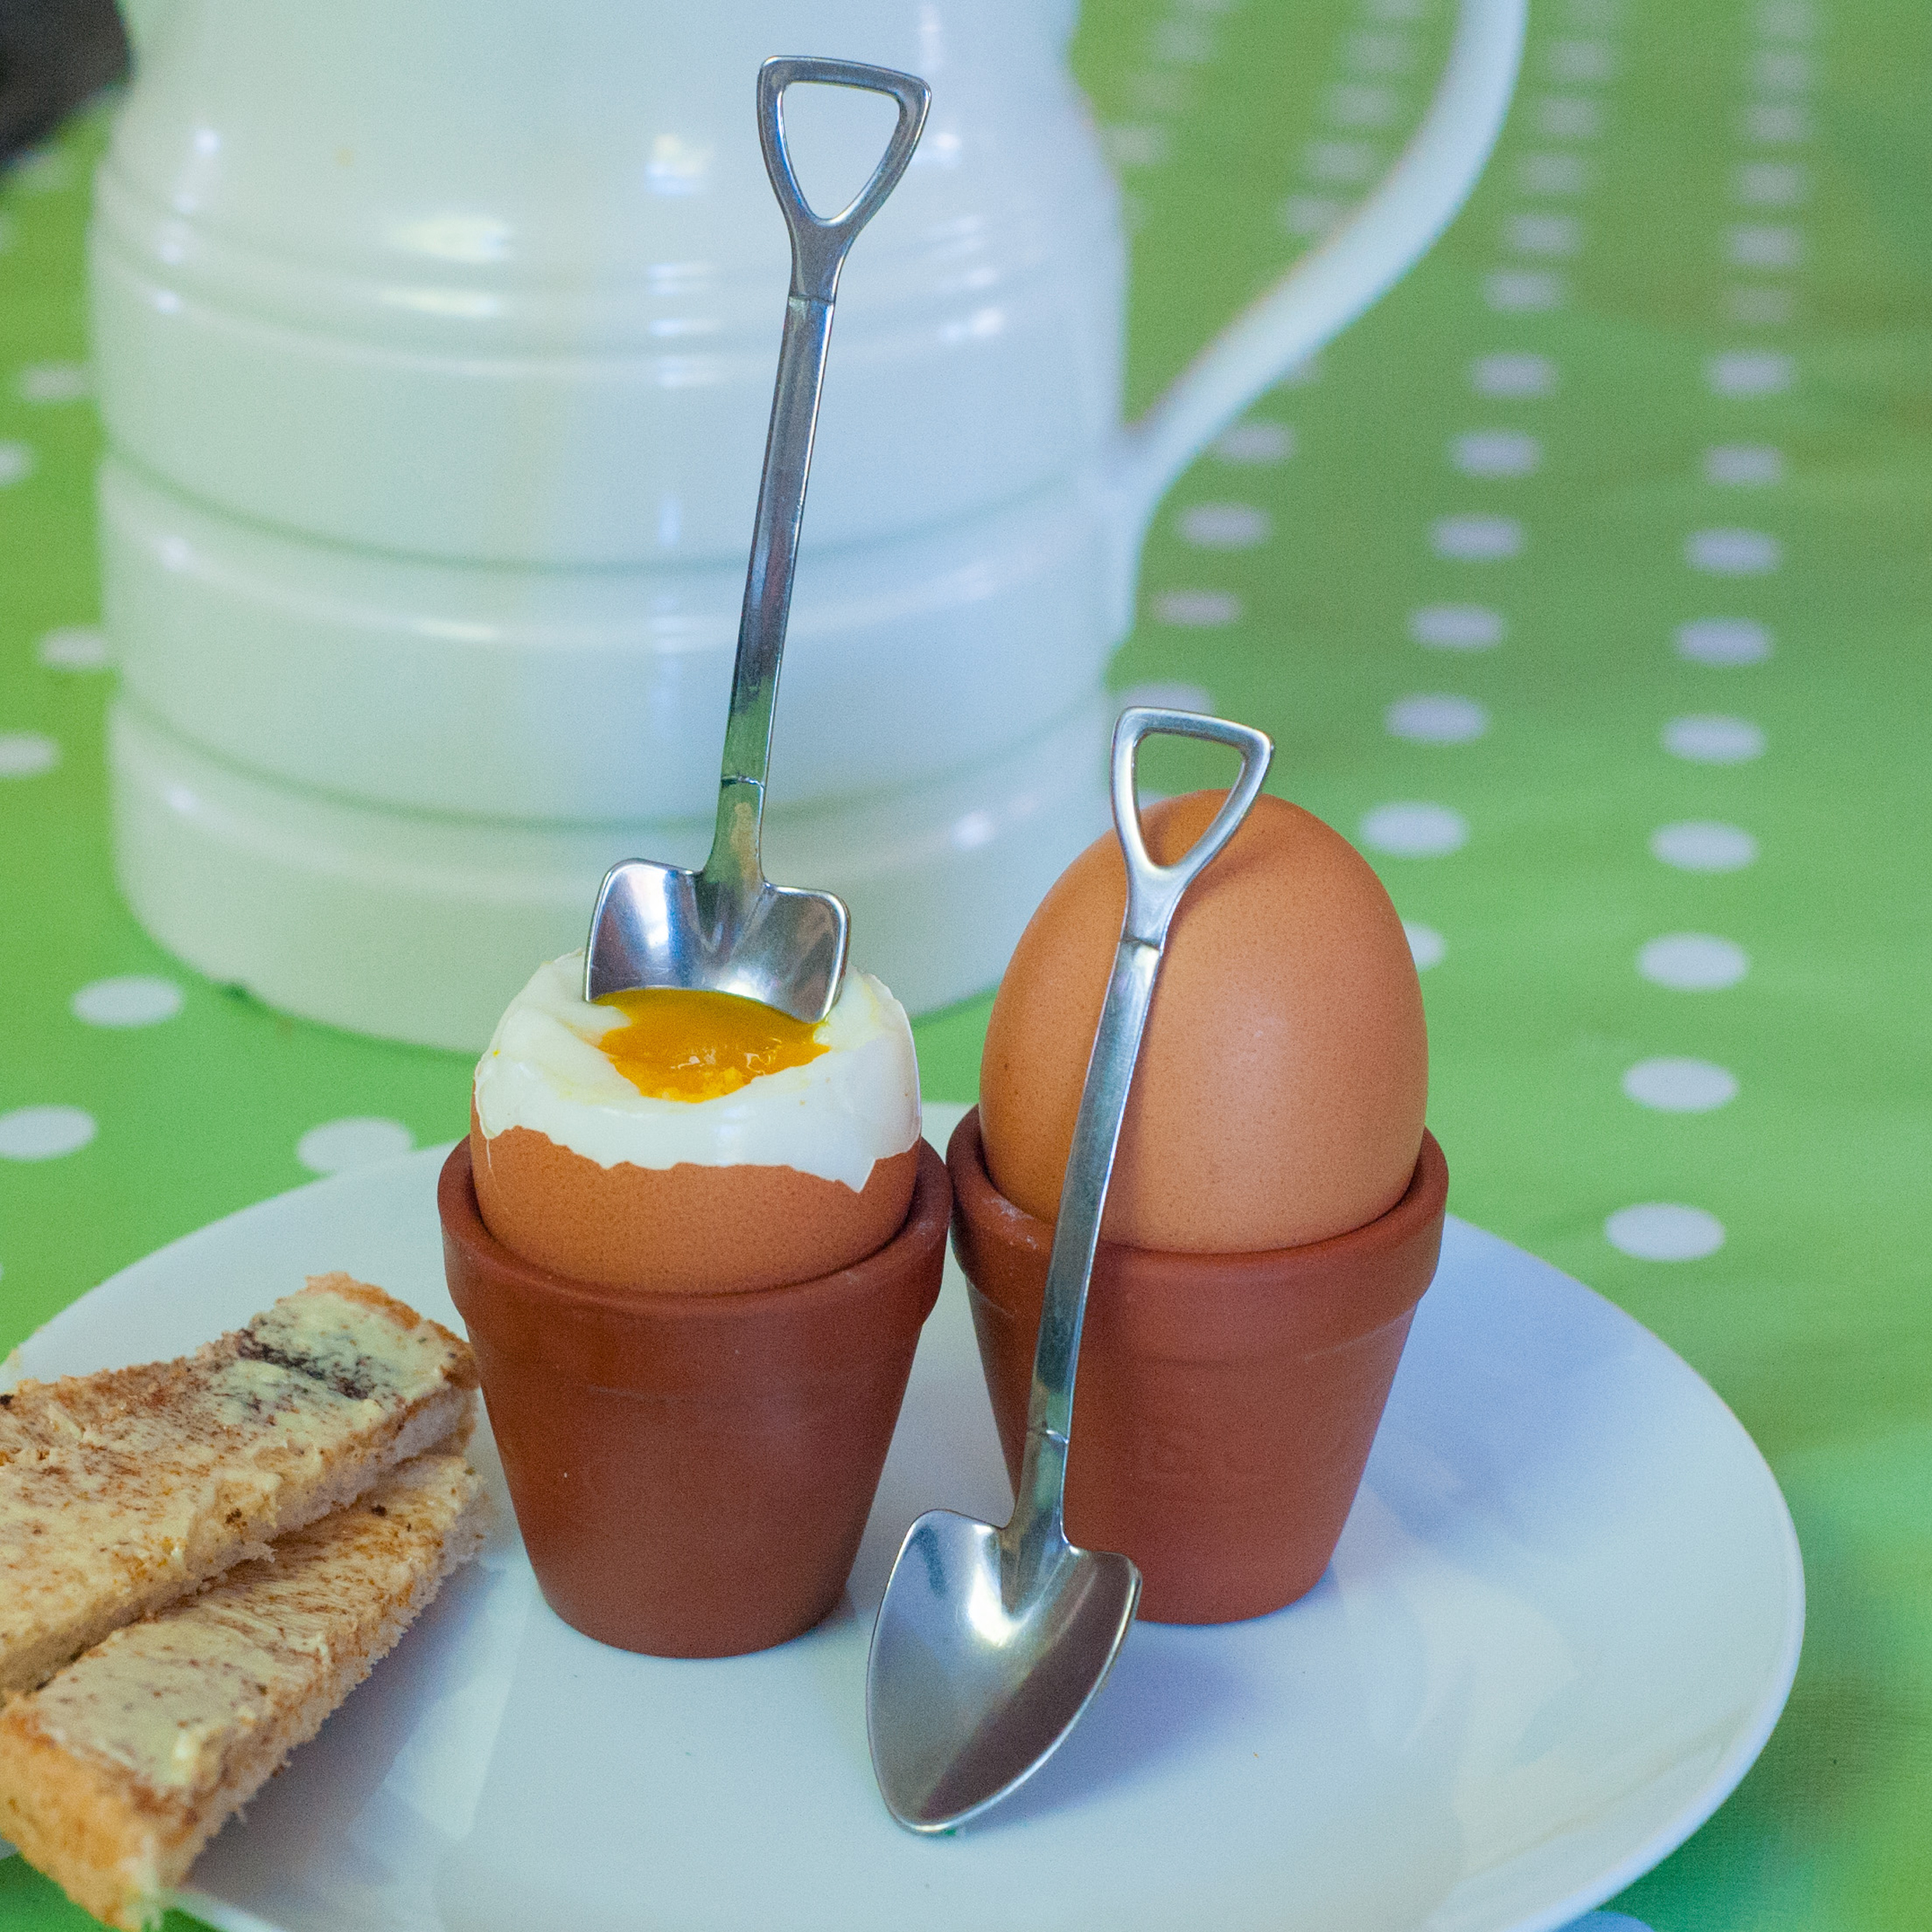 Breakfast for gardeners (Suttons/PA)